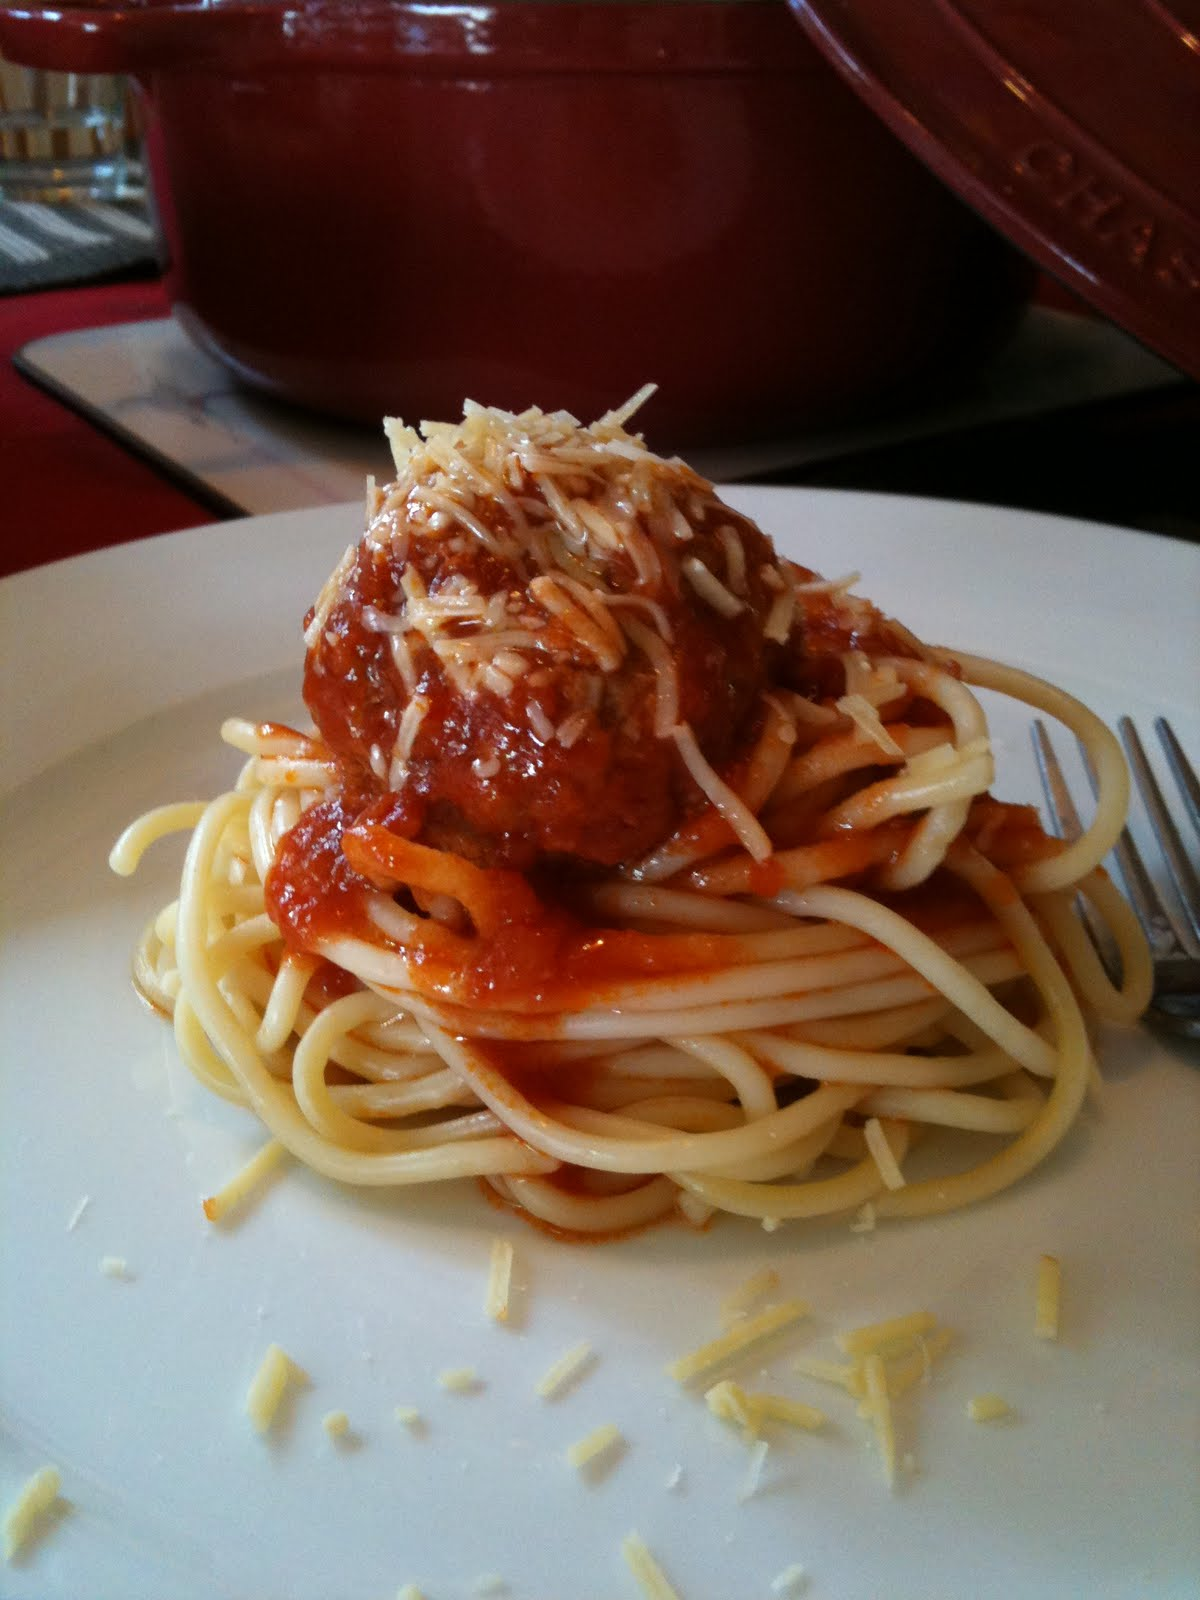 Spaghetti And Meatballs Animated Spaghetti and meatballs by ate